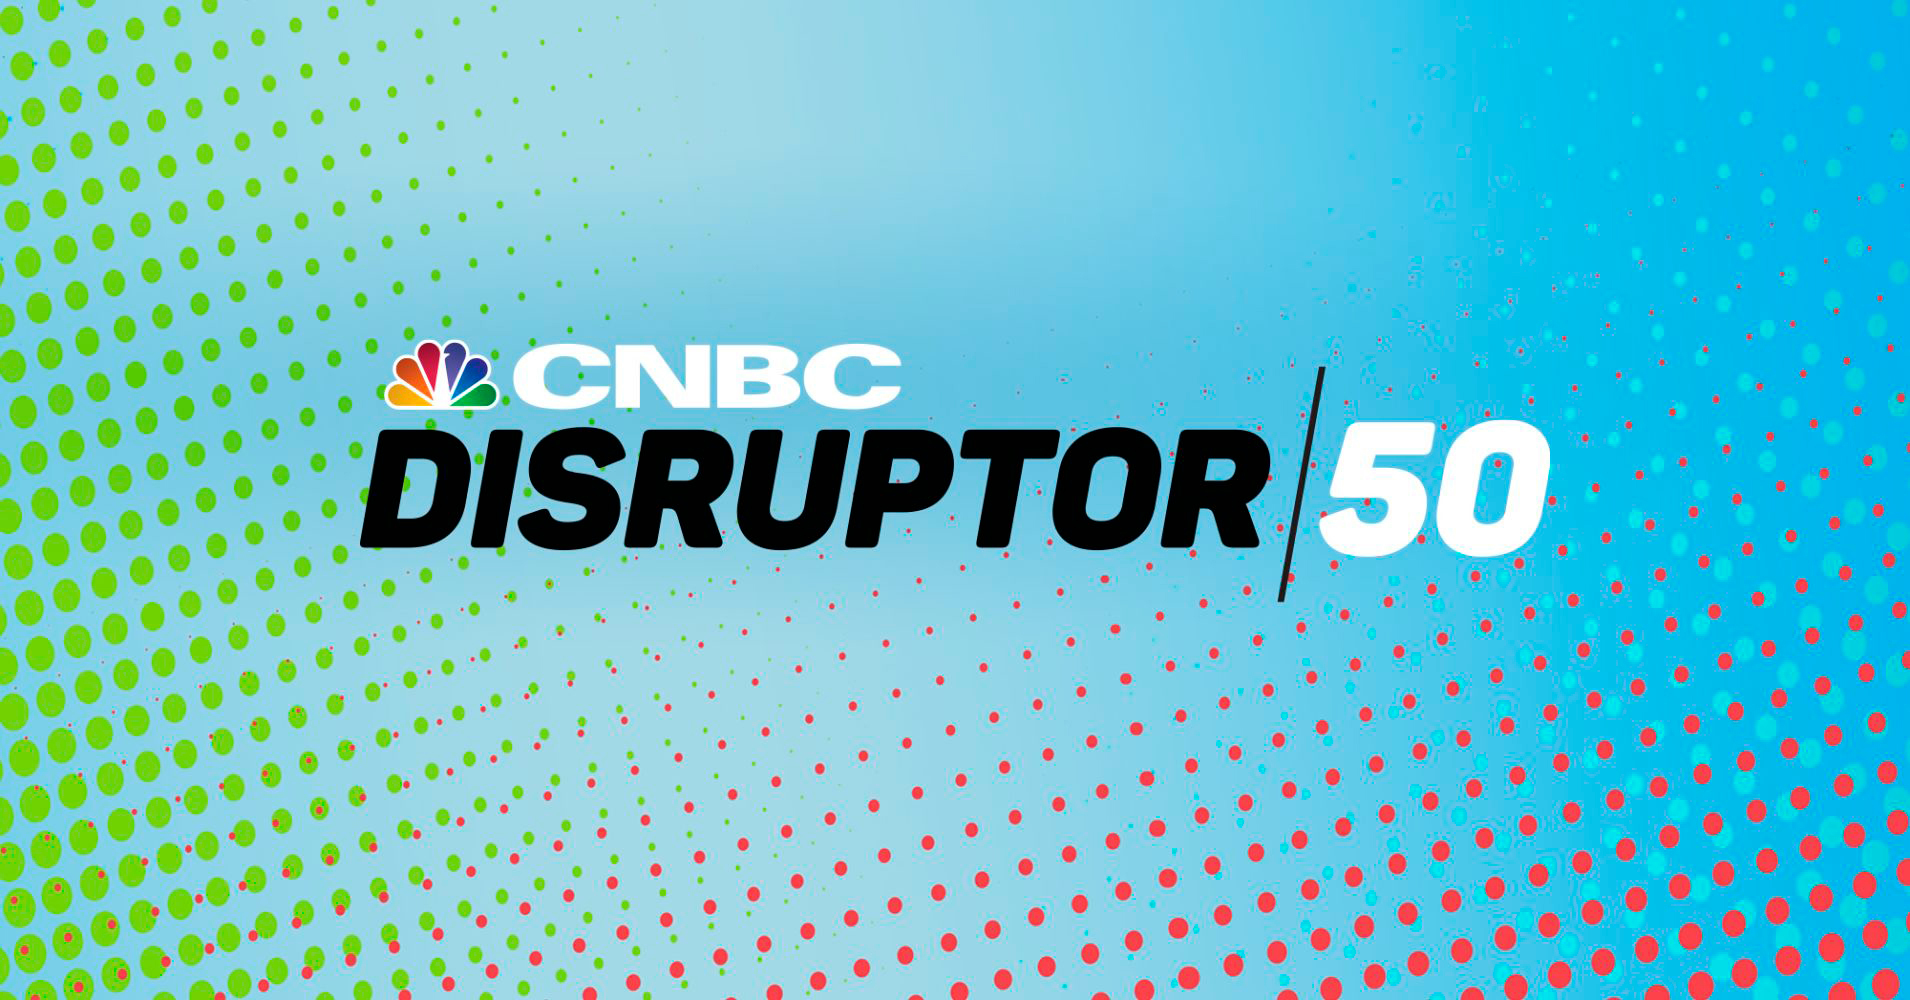 Phononic Honored By CNBC For Innovations That Revolutionize